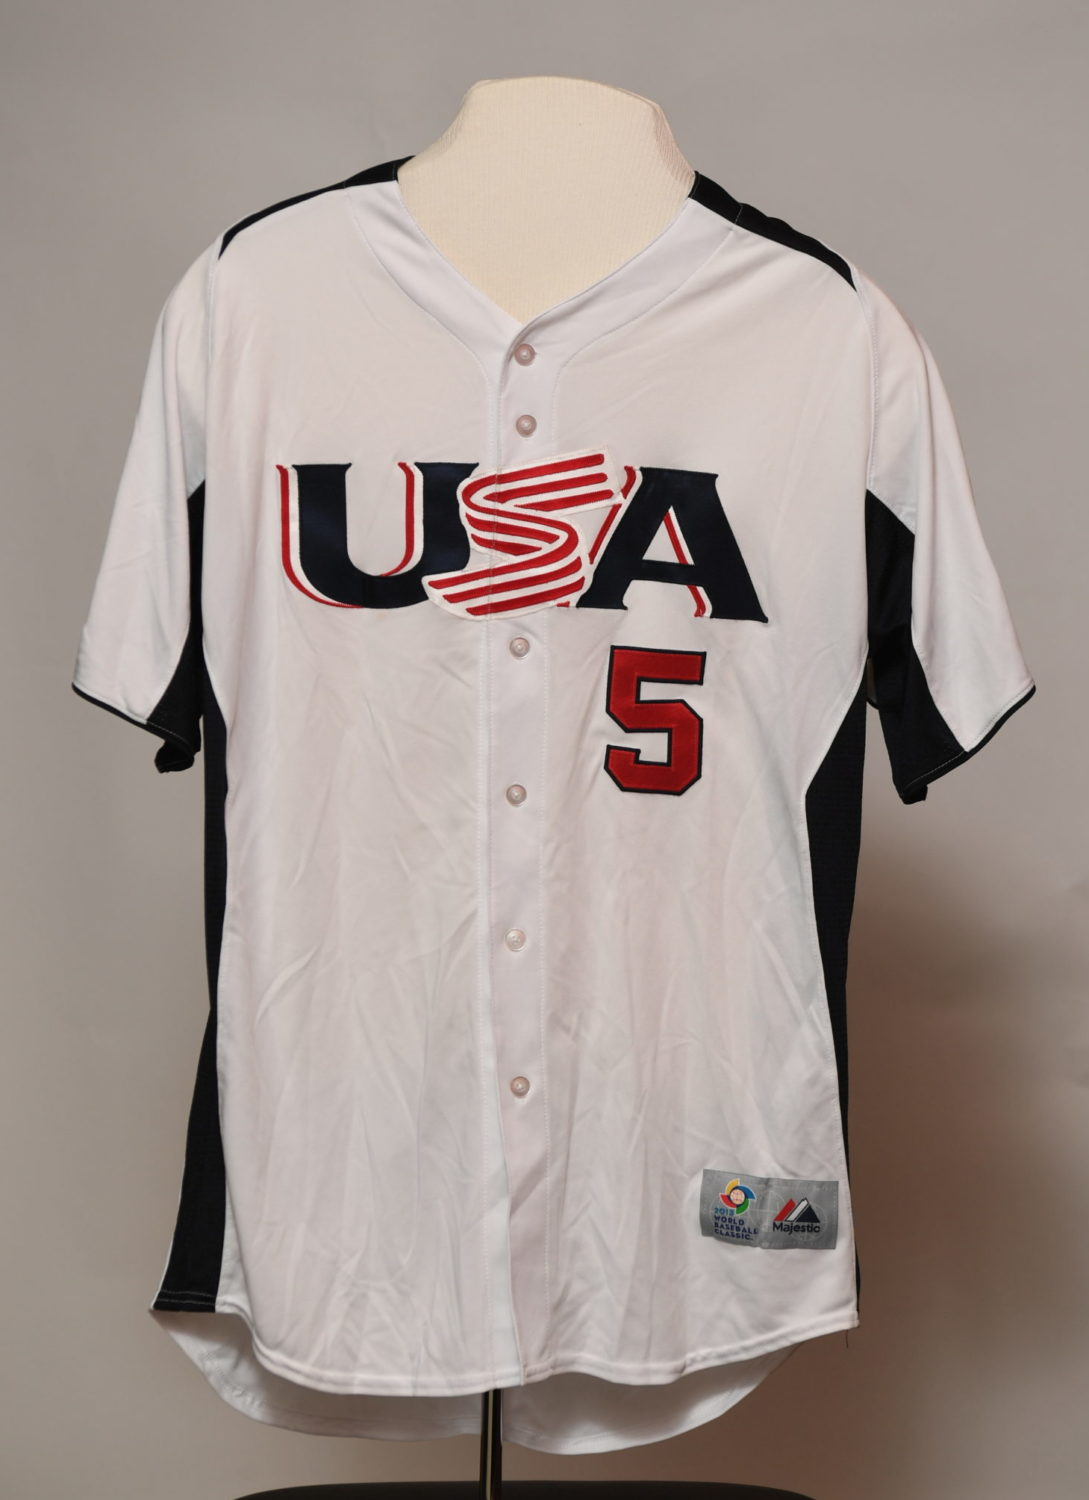 From of white jersey that reads